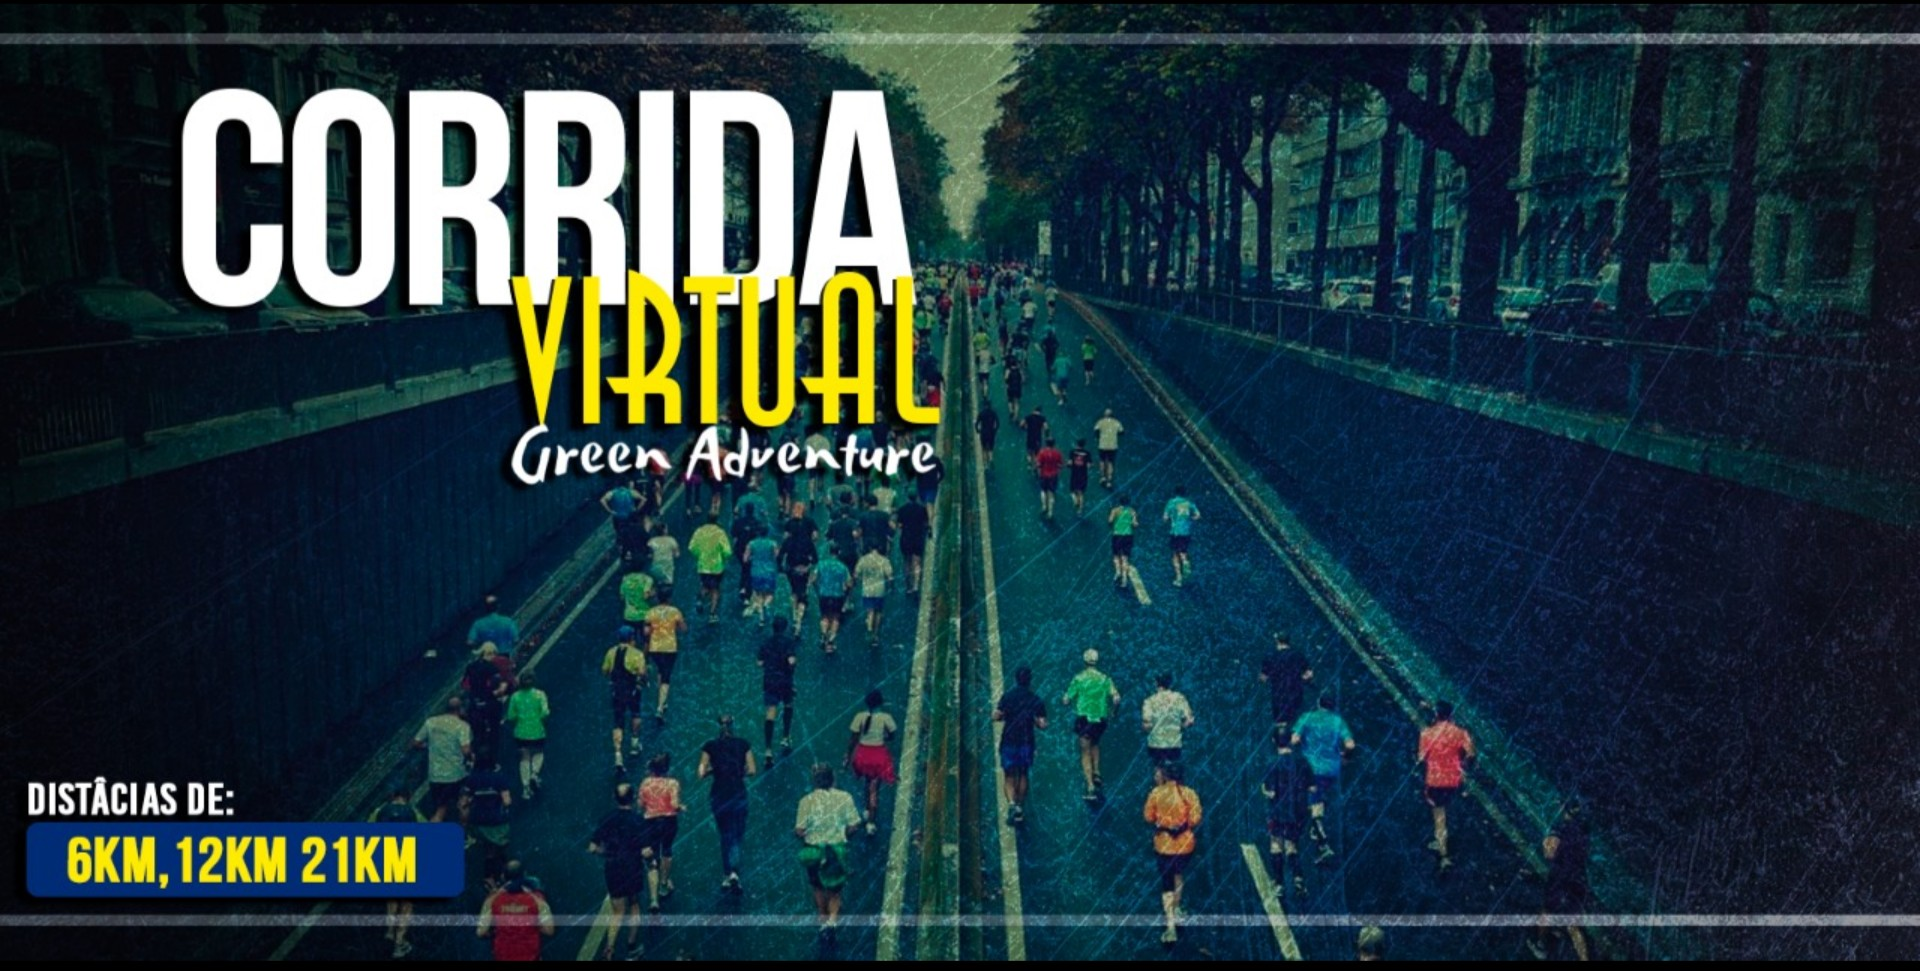 Corrida Virtual Green Adventure